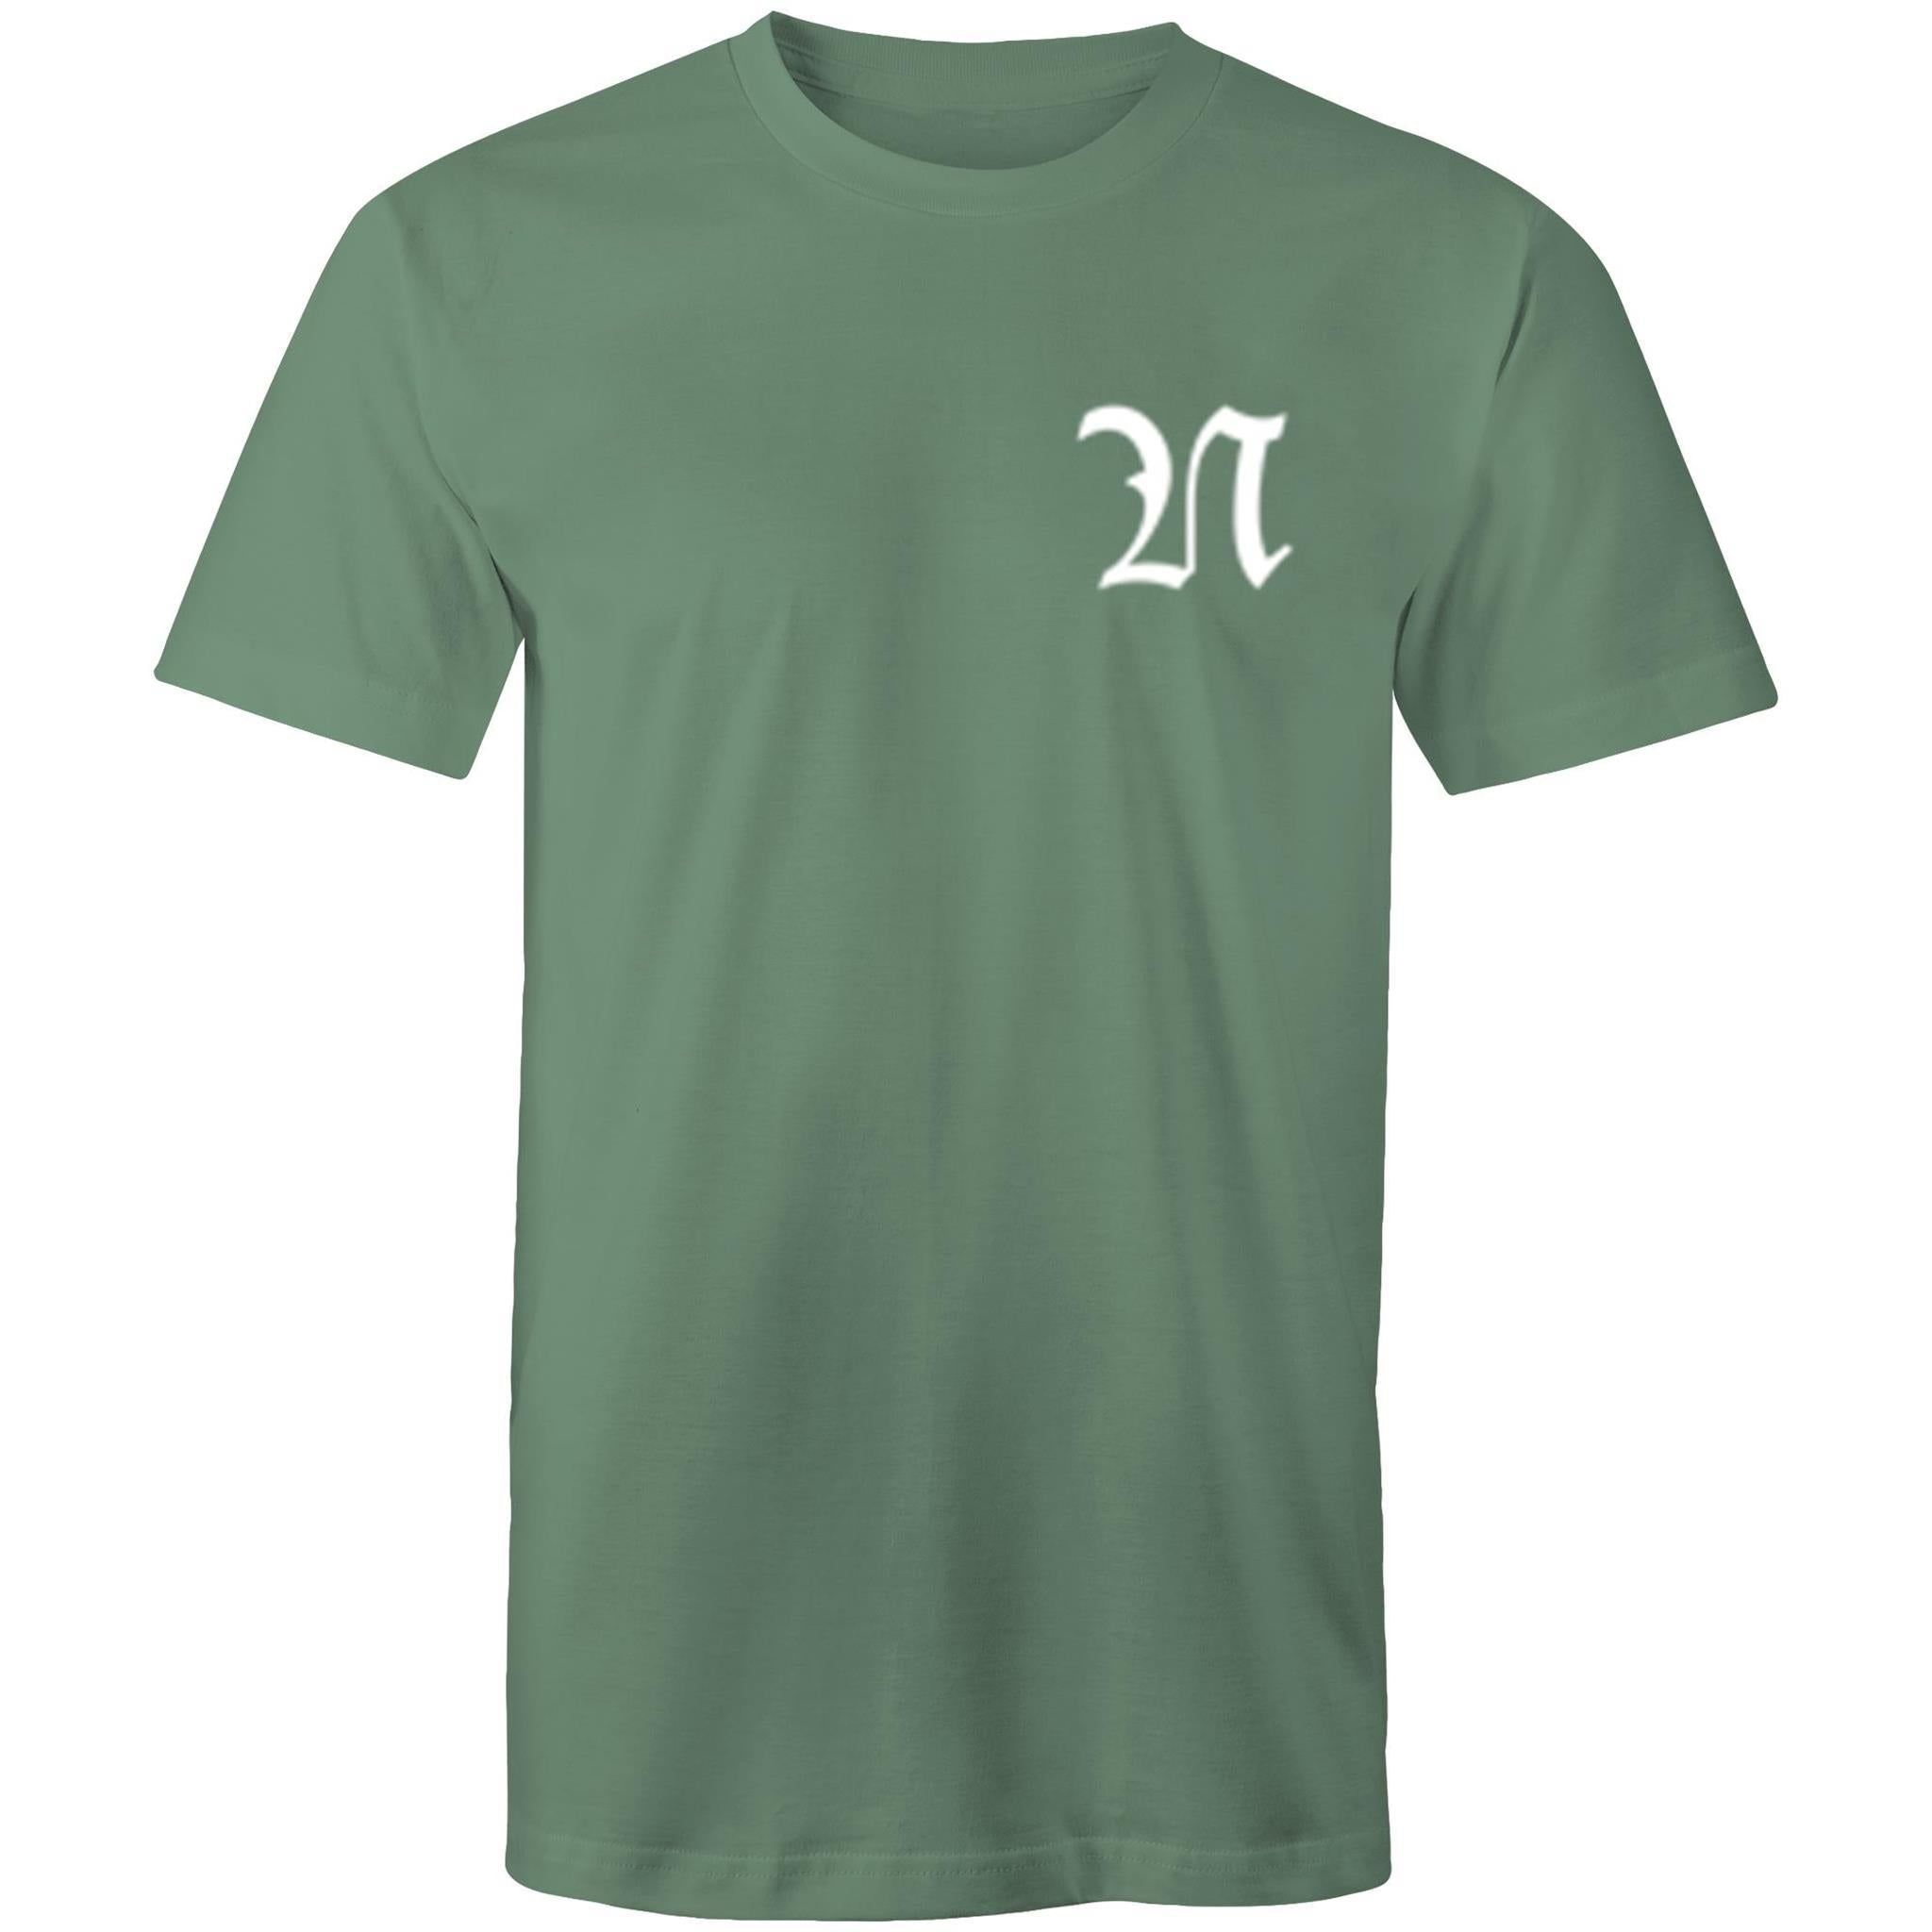 N - Colour Staple Mens T-Shirt - The Simple Selection